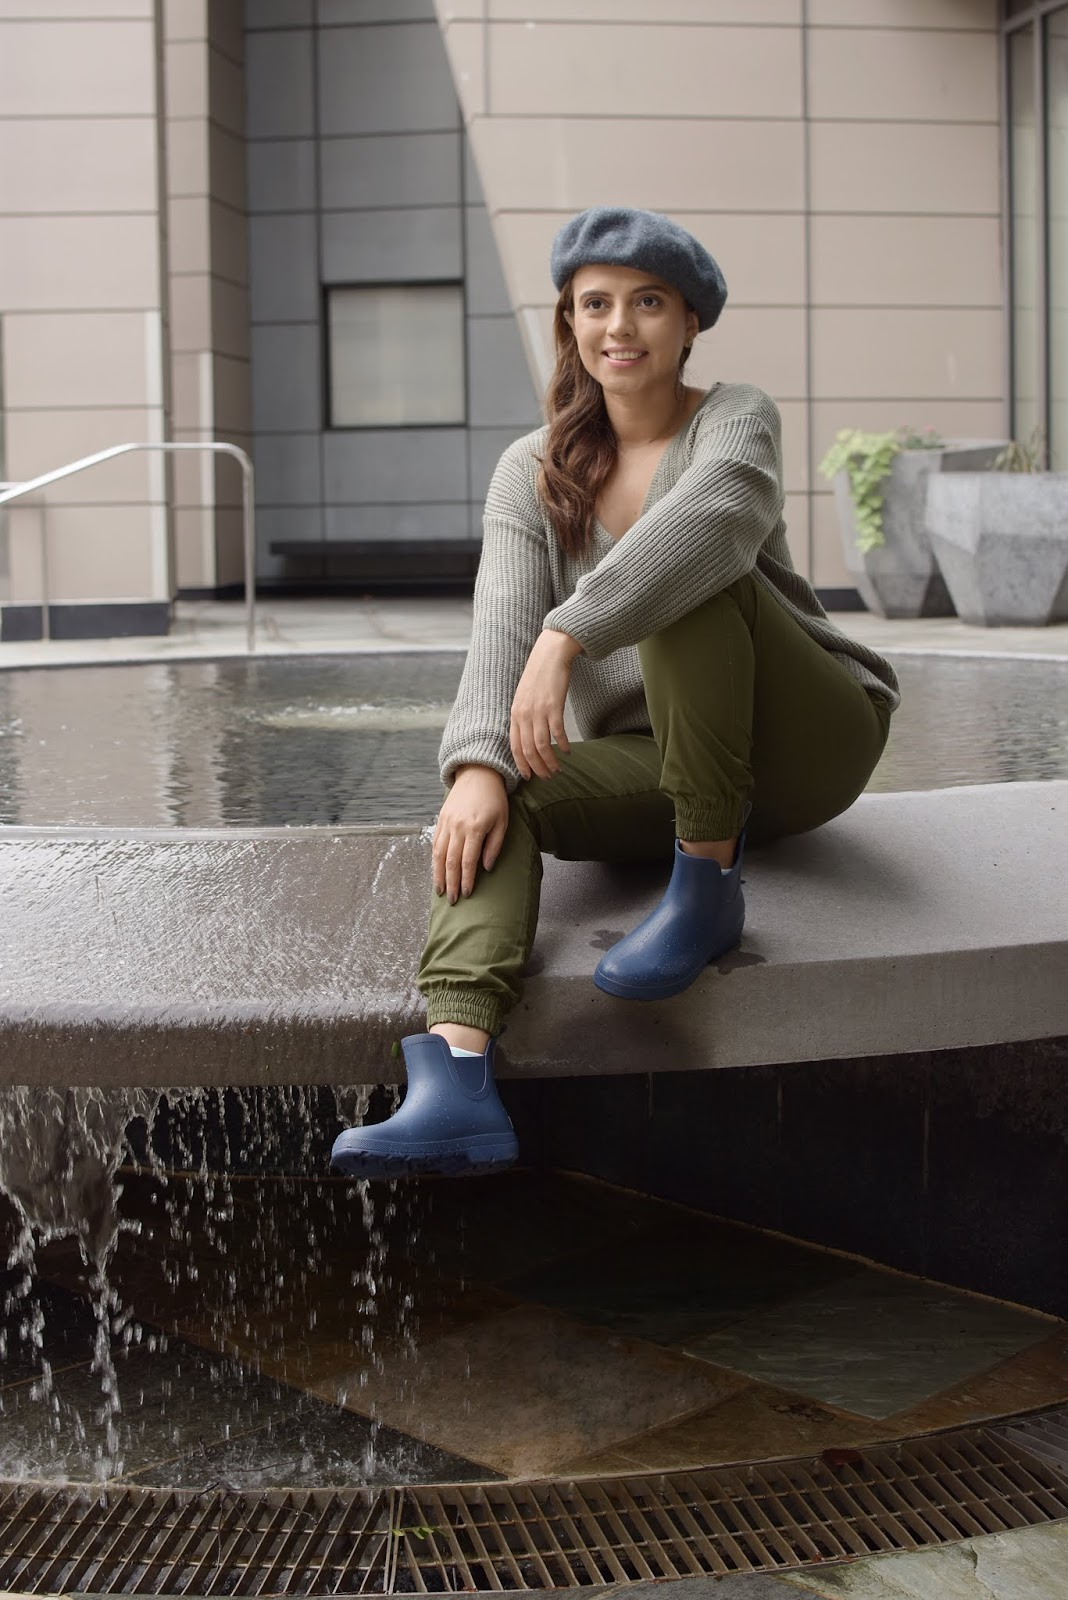 Functional Fashion For Rainy Days With My New Totes Cirrus Rainboot  by MariEstilo.